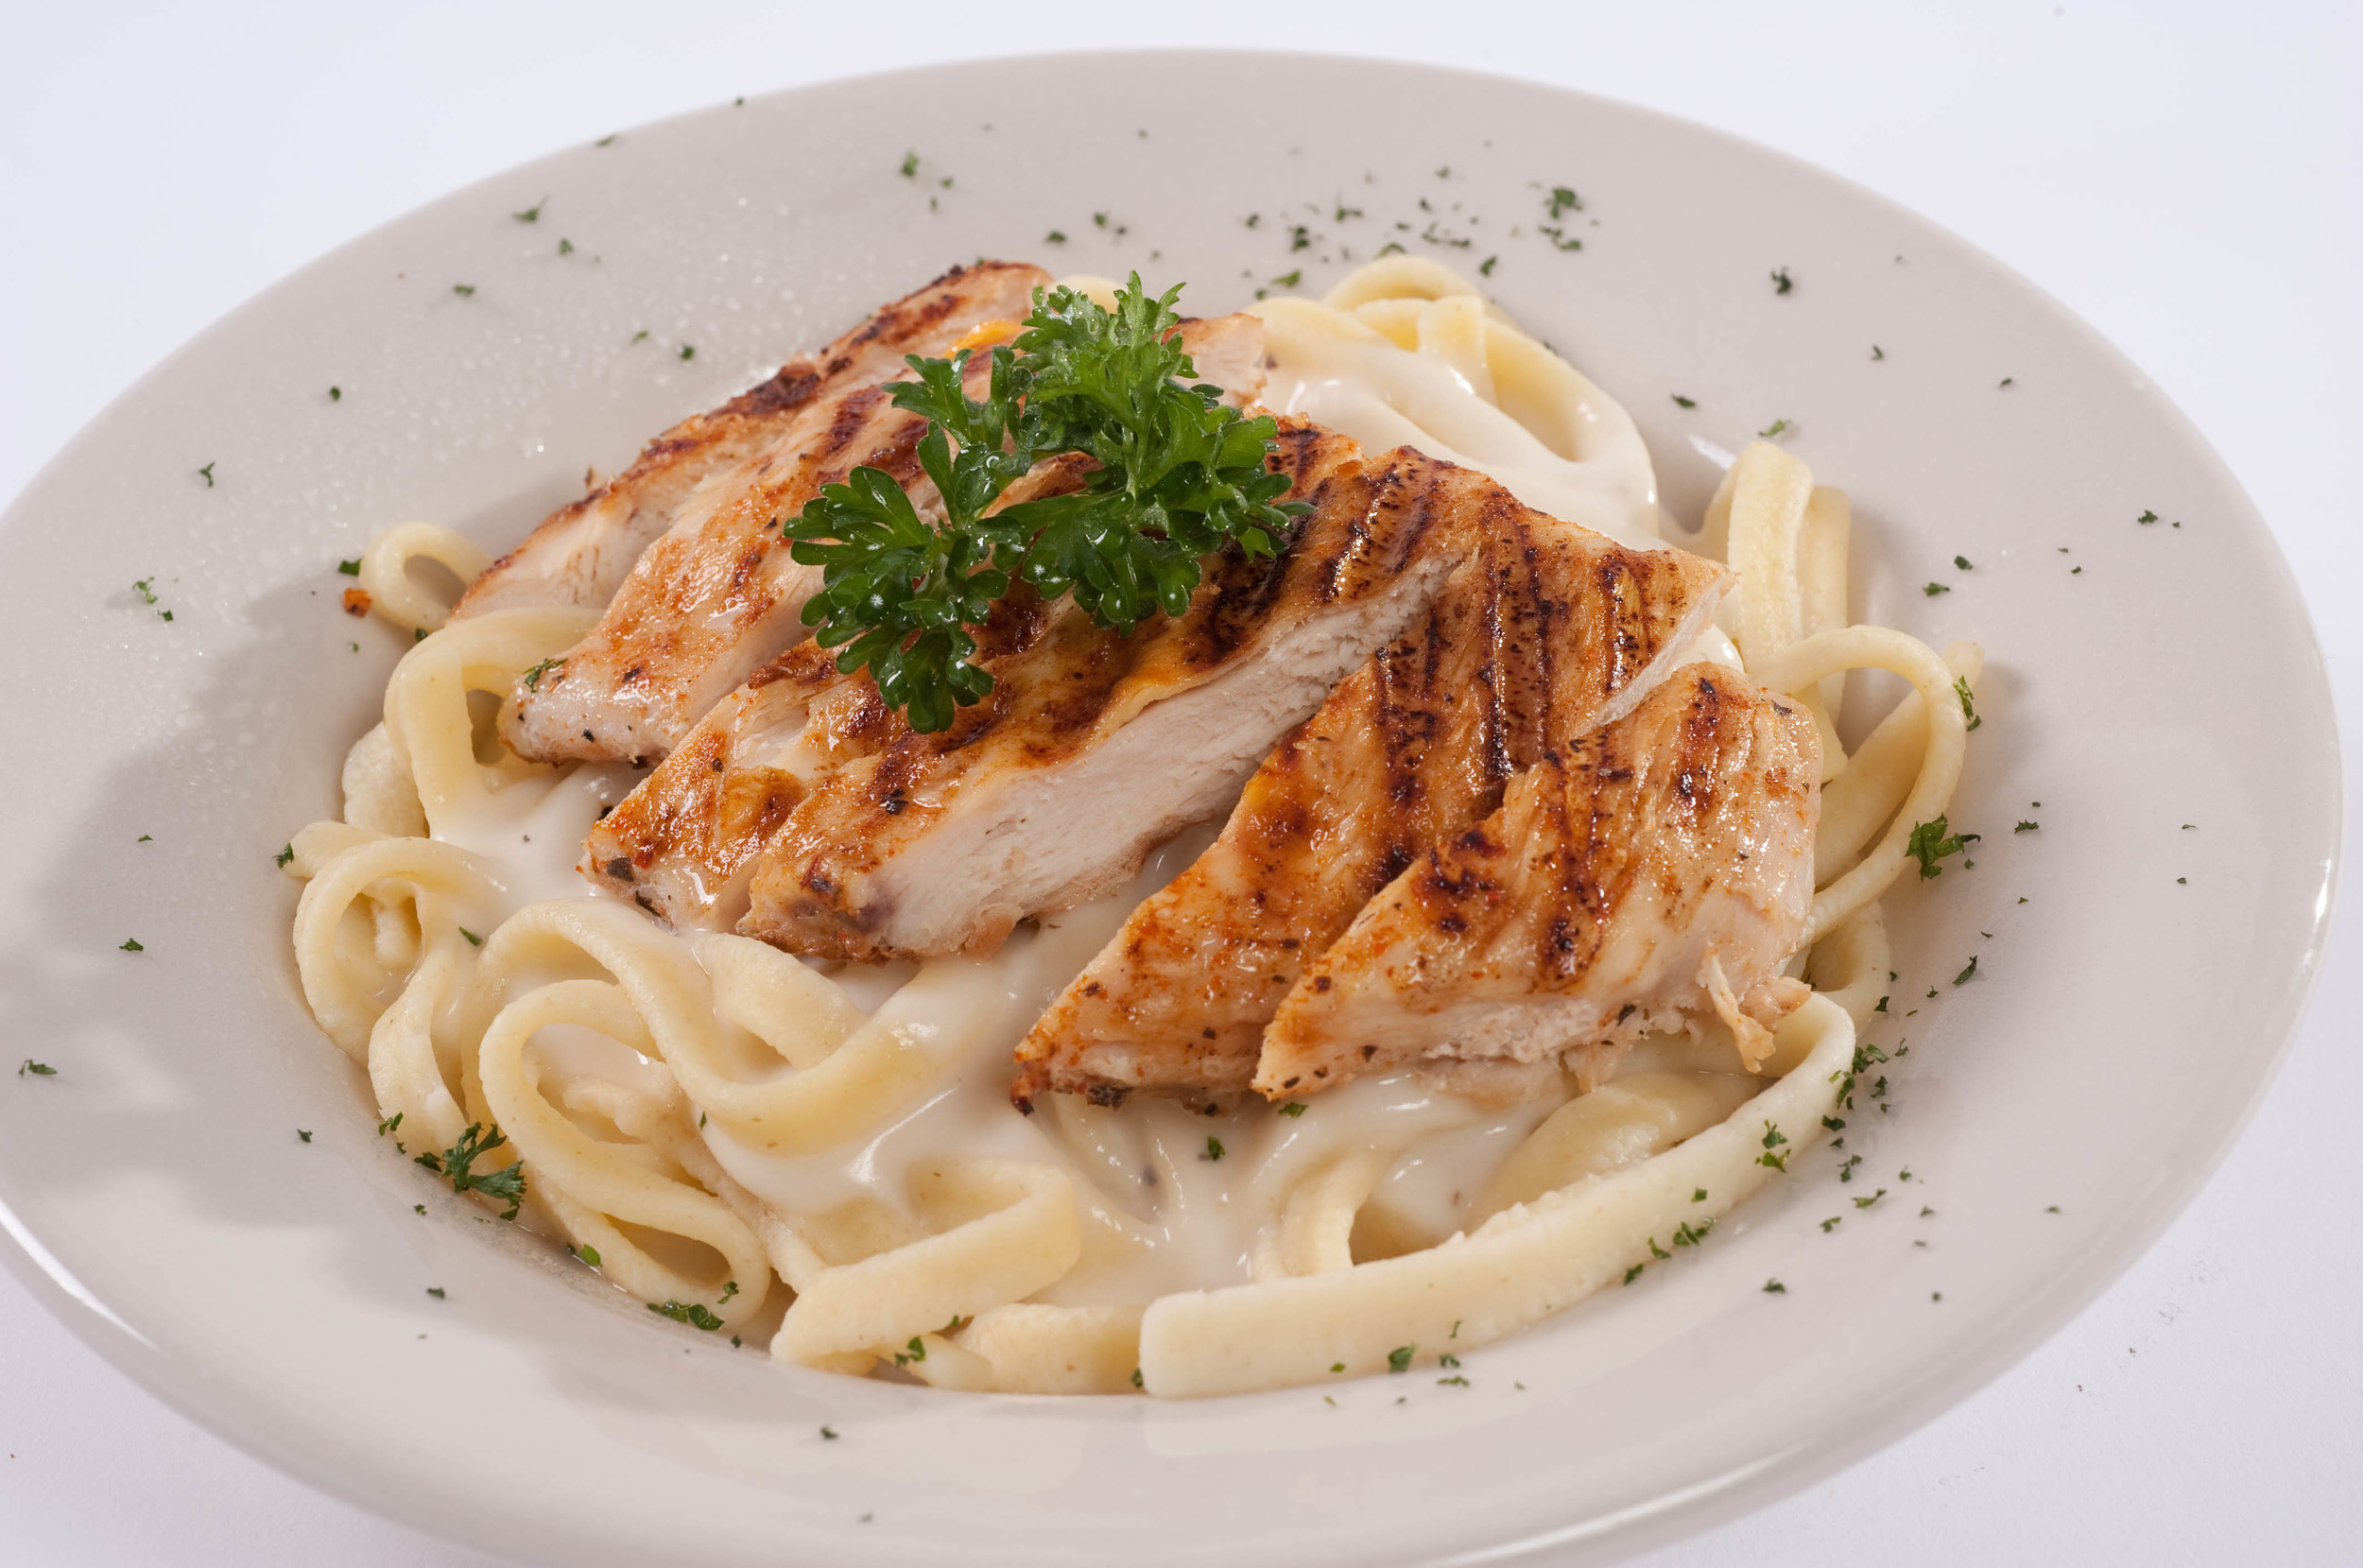 CHICKEN FETTUCCINE ALFREDO     Tossed in a Creamy Parmesan Butter Sauce.